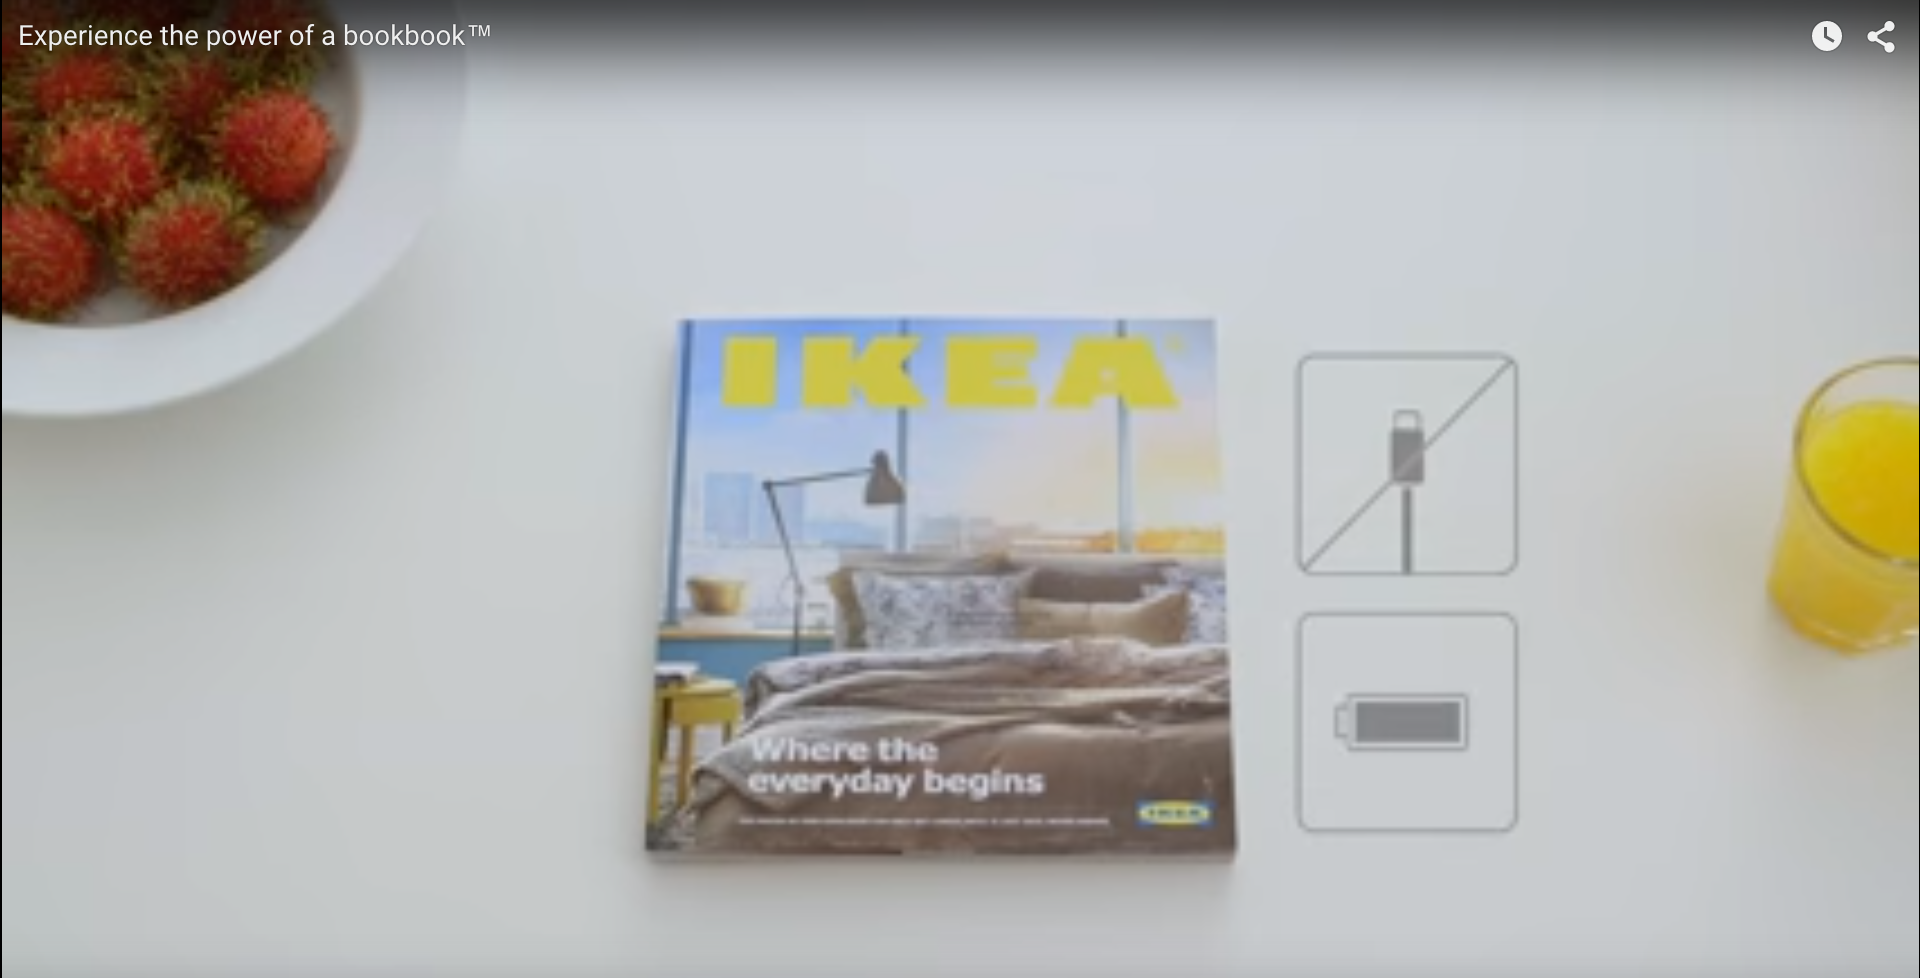 Its commercial video used an Apple-like asthetic to show the simple navigation of its paper catalog